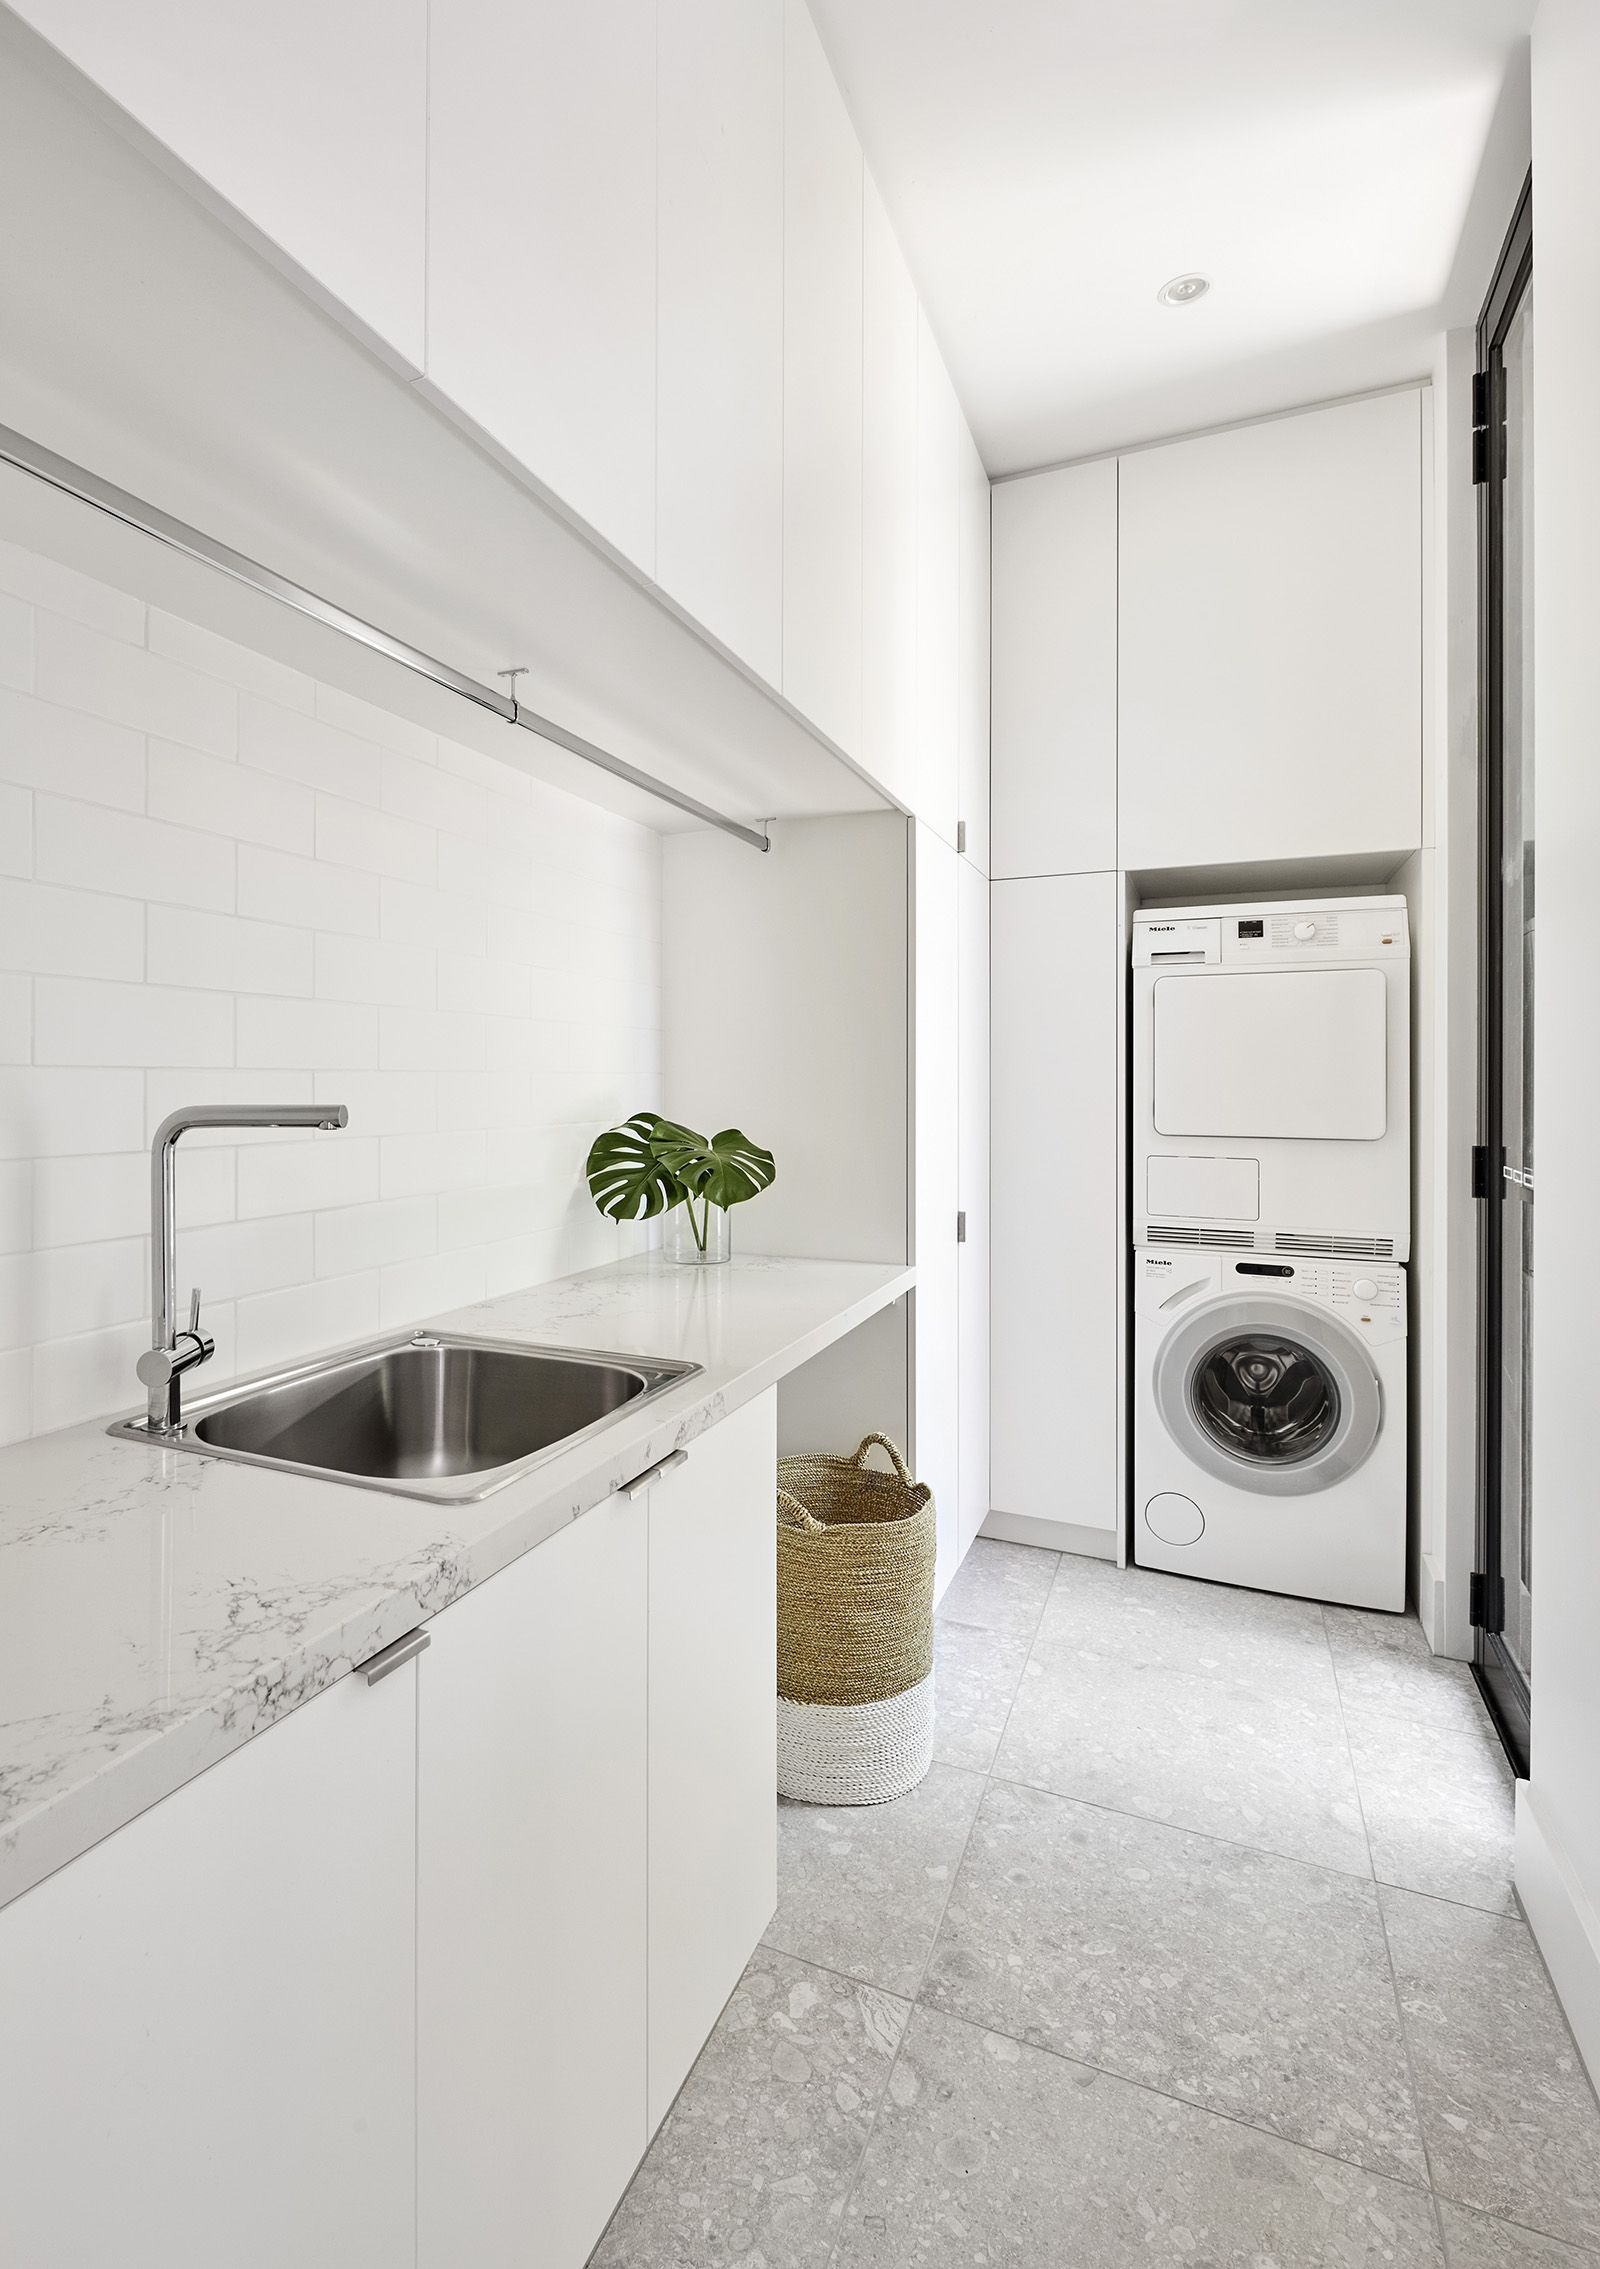 Lumiere | Laundry | Pinterest | Laundry, Cabinet storage and White ...